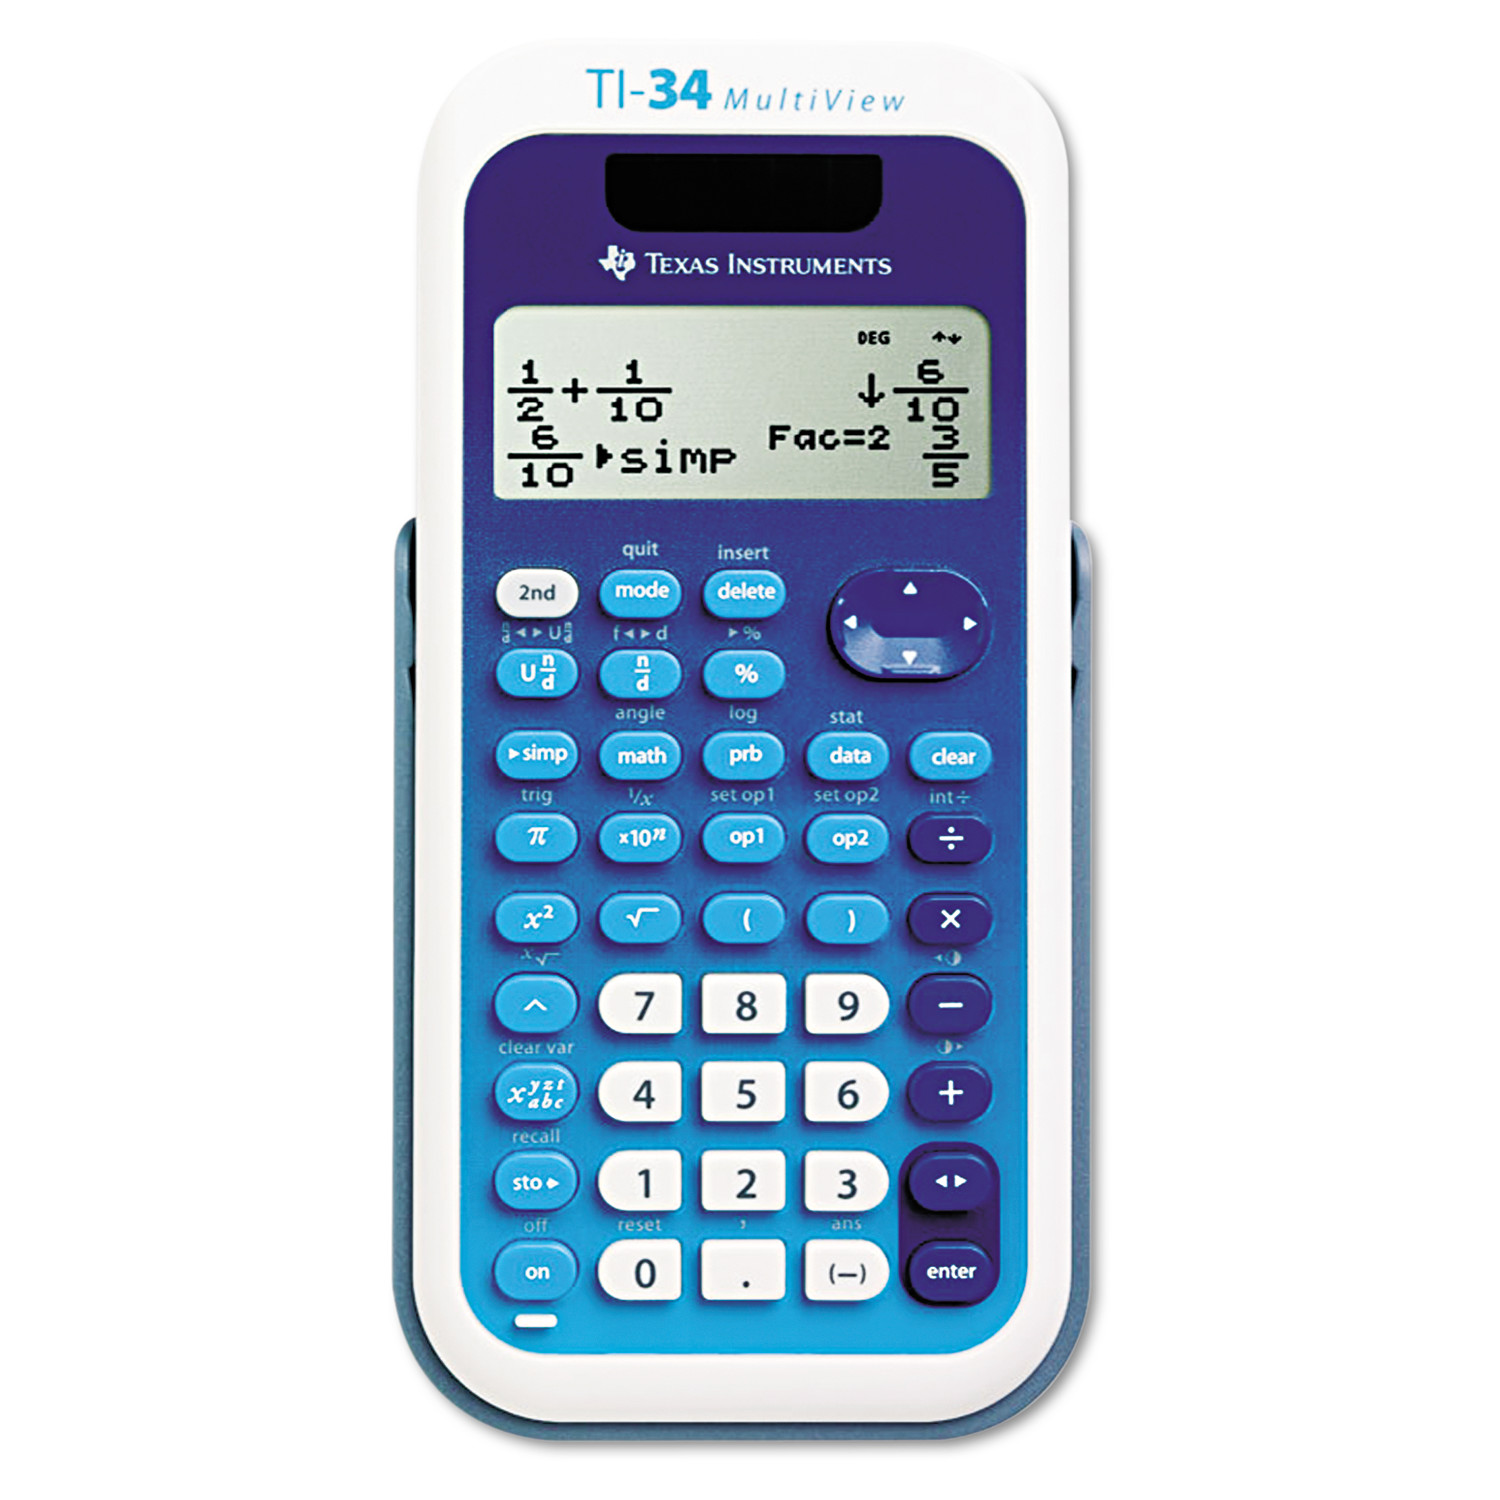 Texas Instruments TI-34 MultiView Scientific Calculator, 16-Digit LCD by Texas Instruments